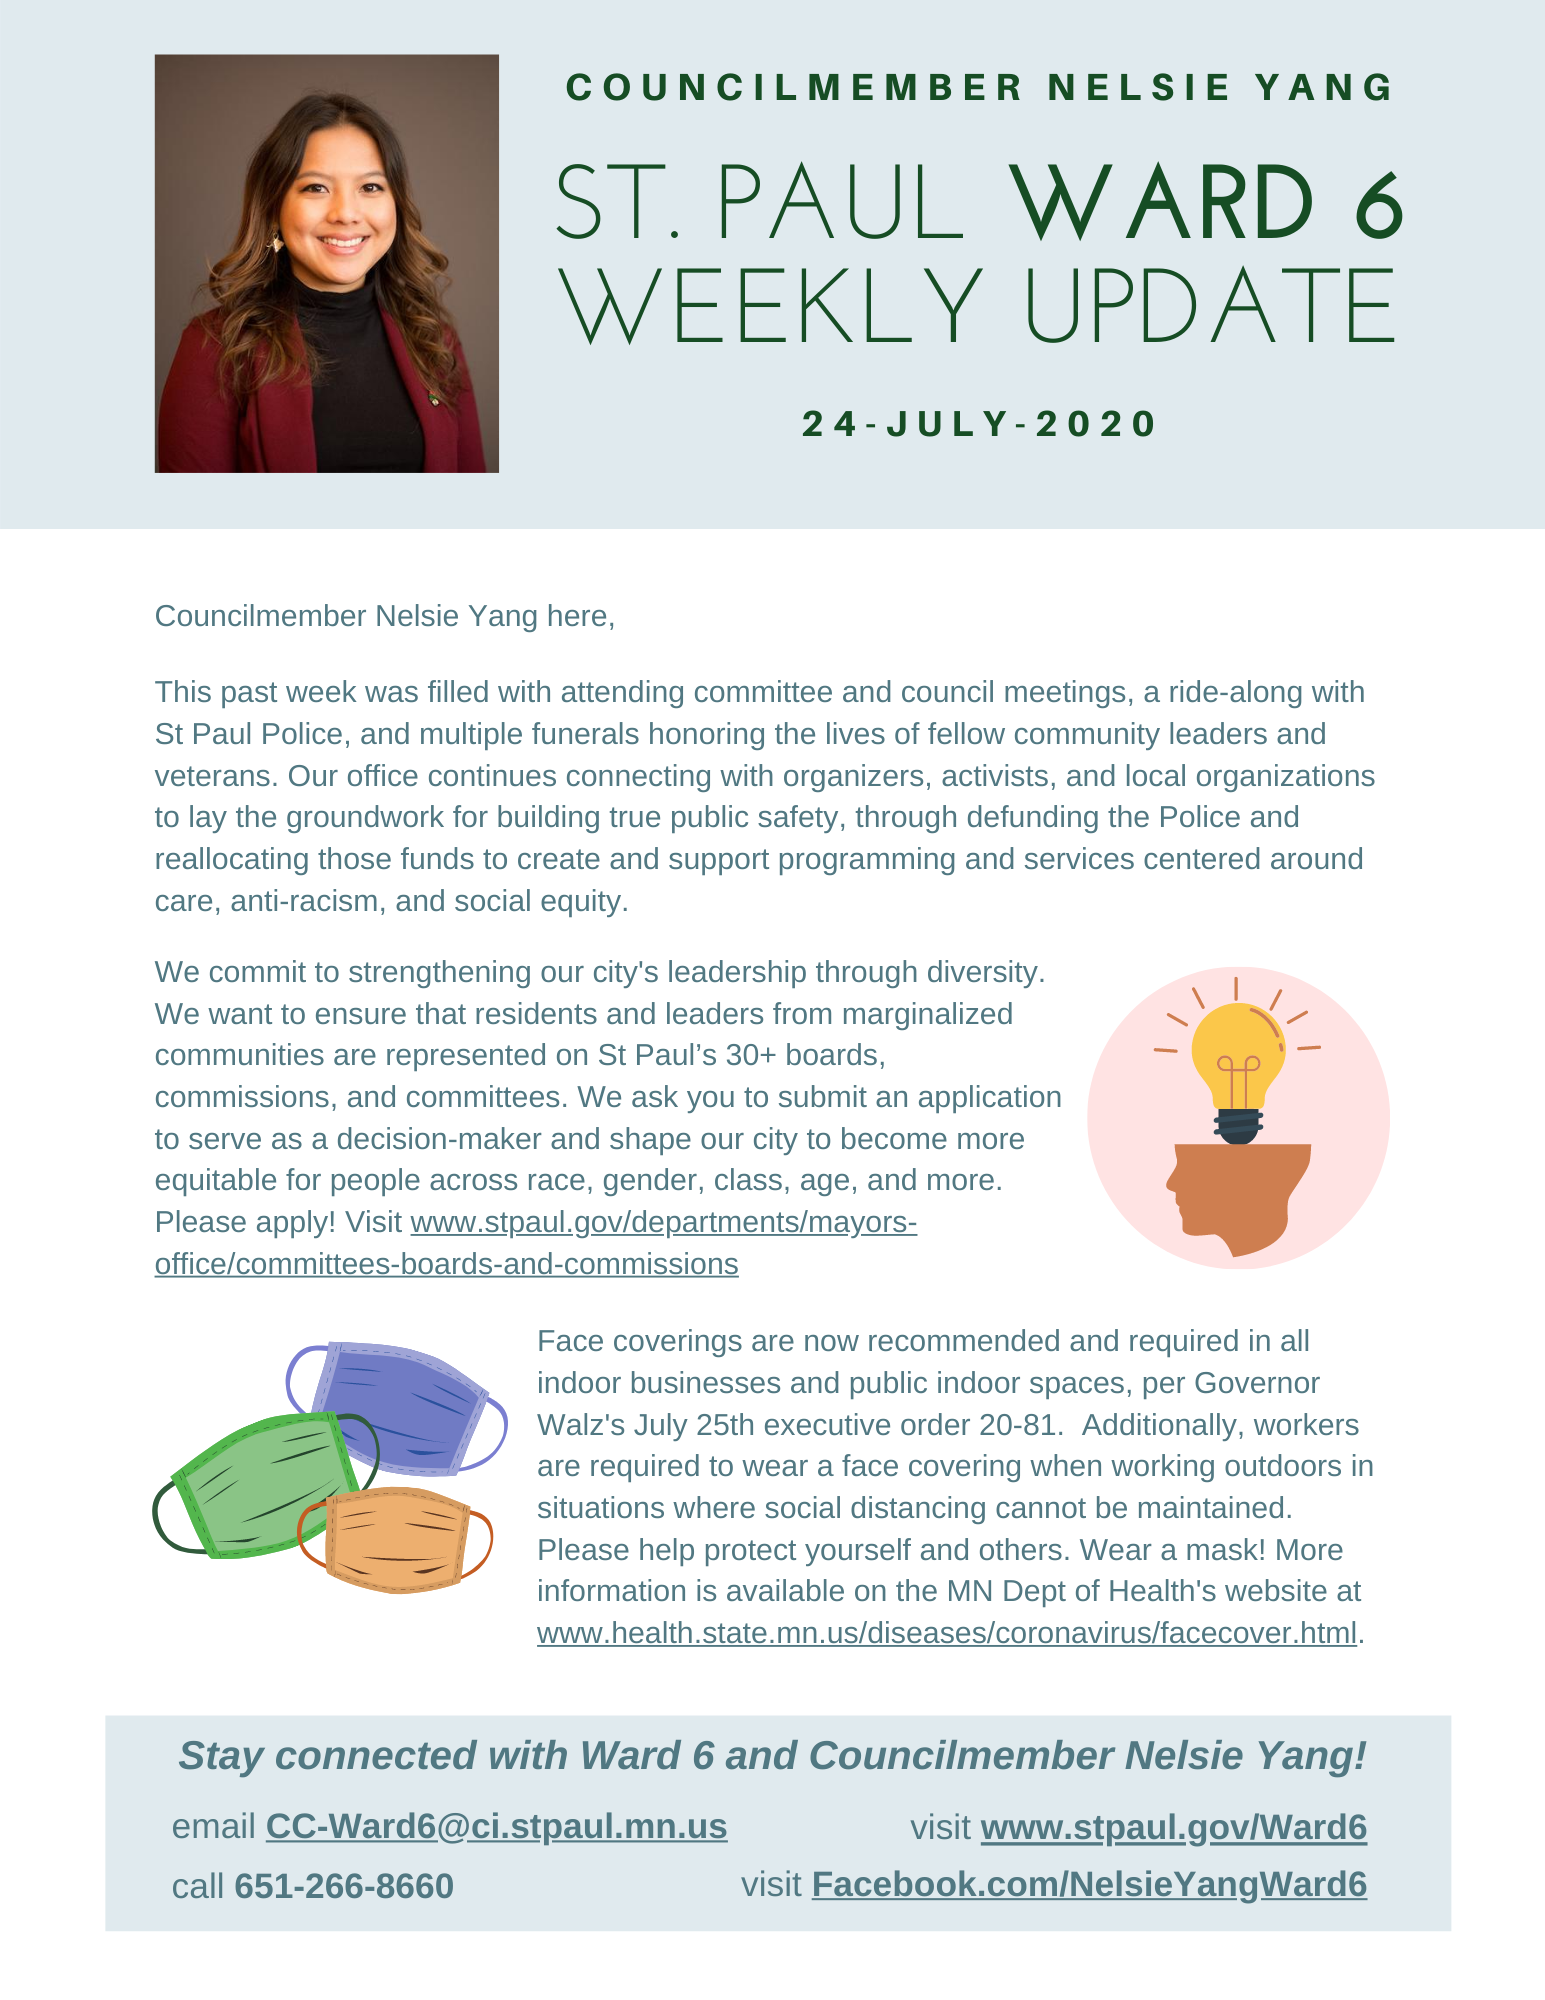 W6 Weekly Update - 24 July 2020.png